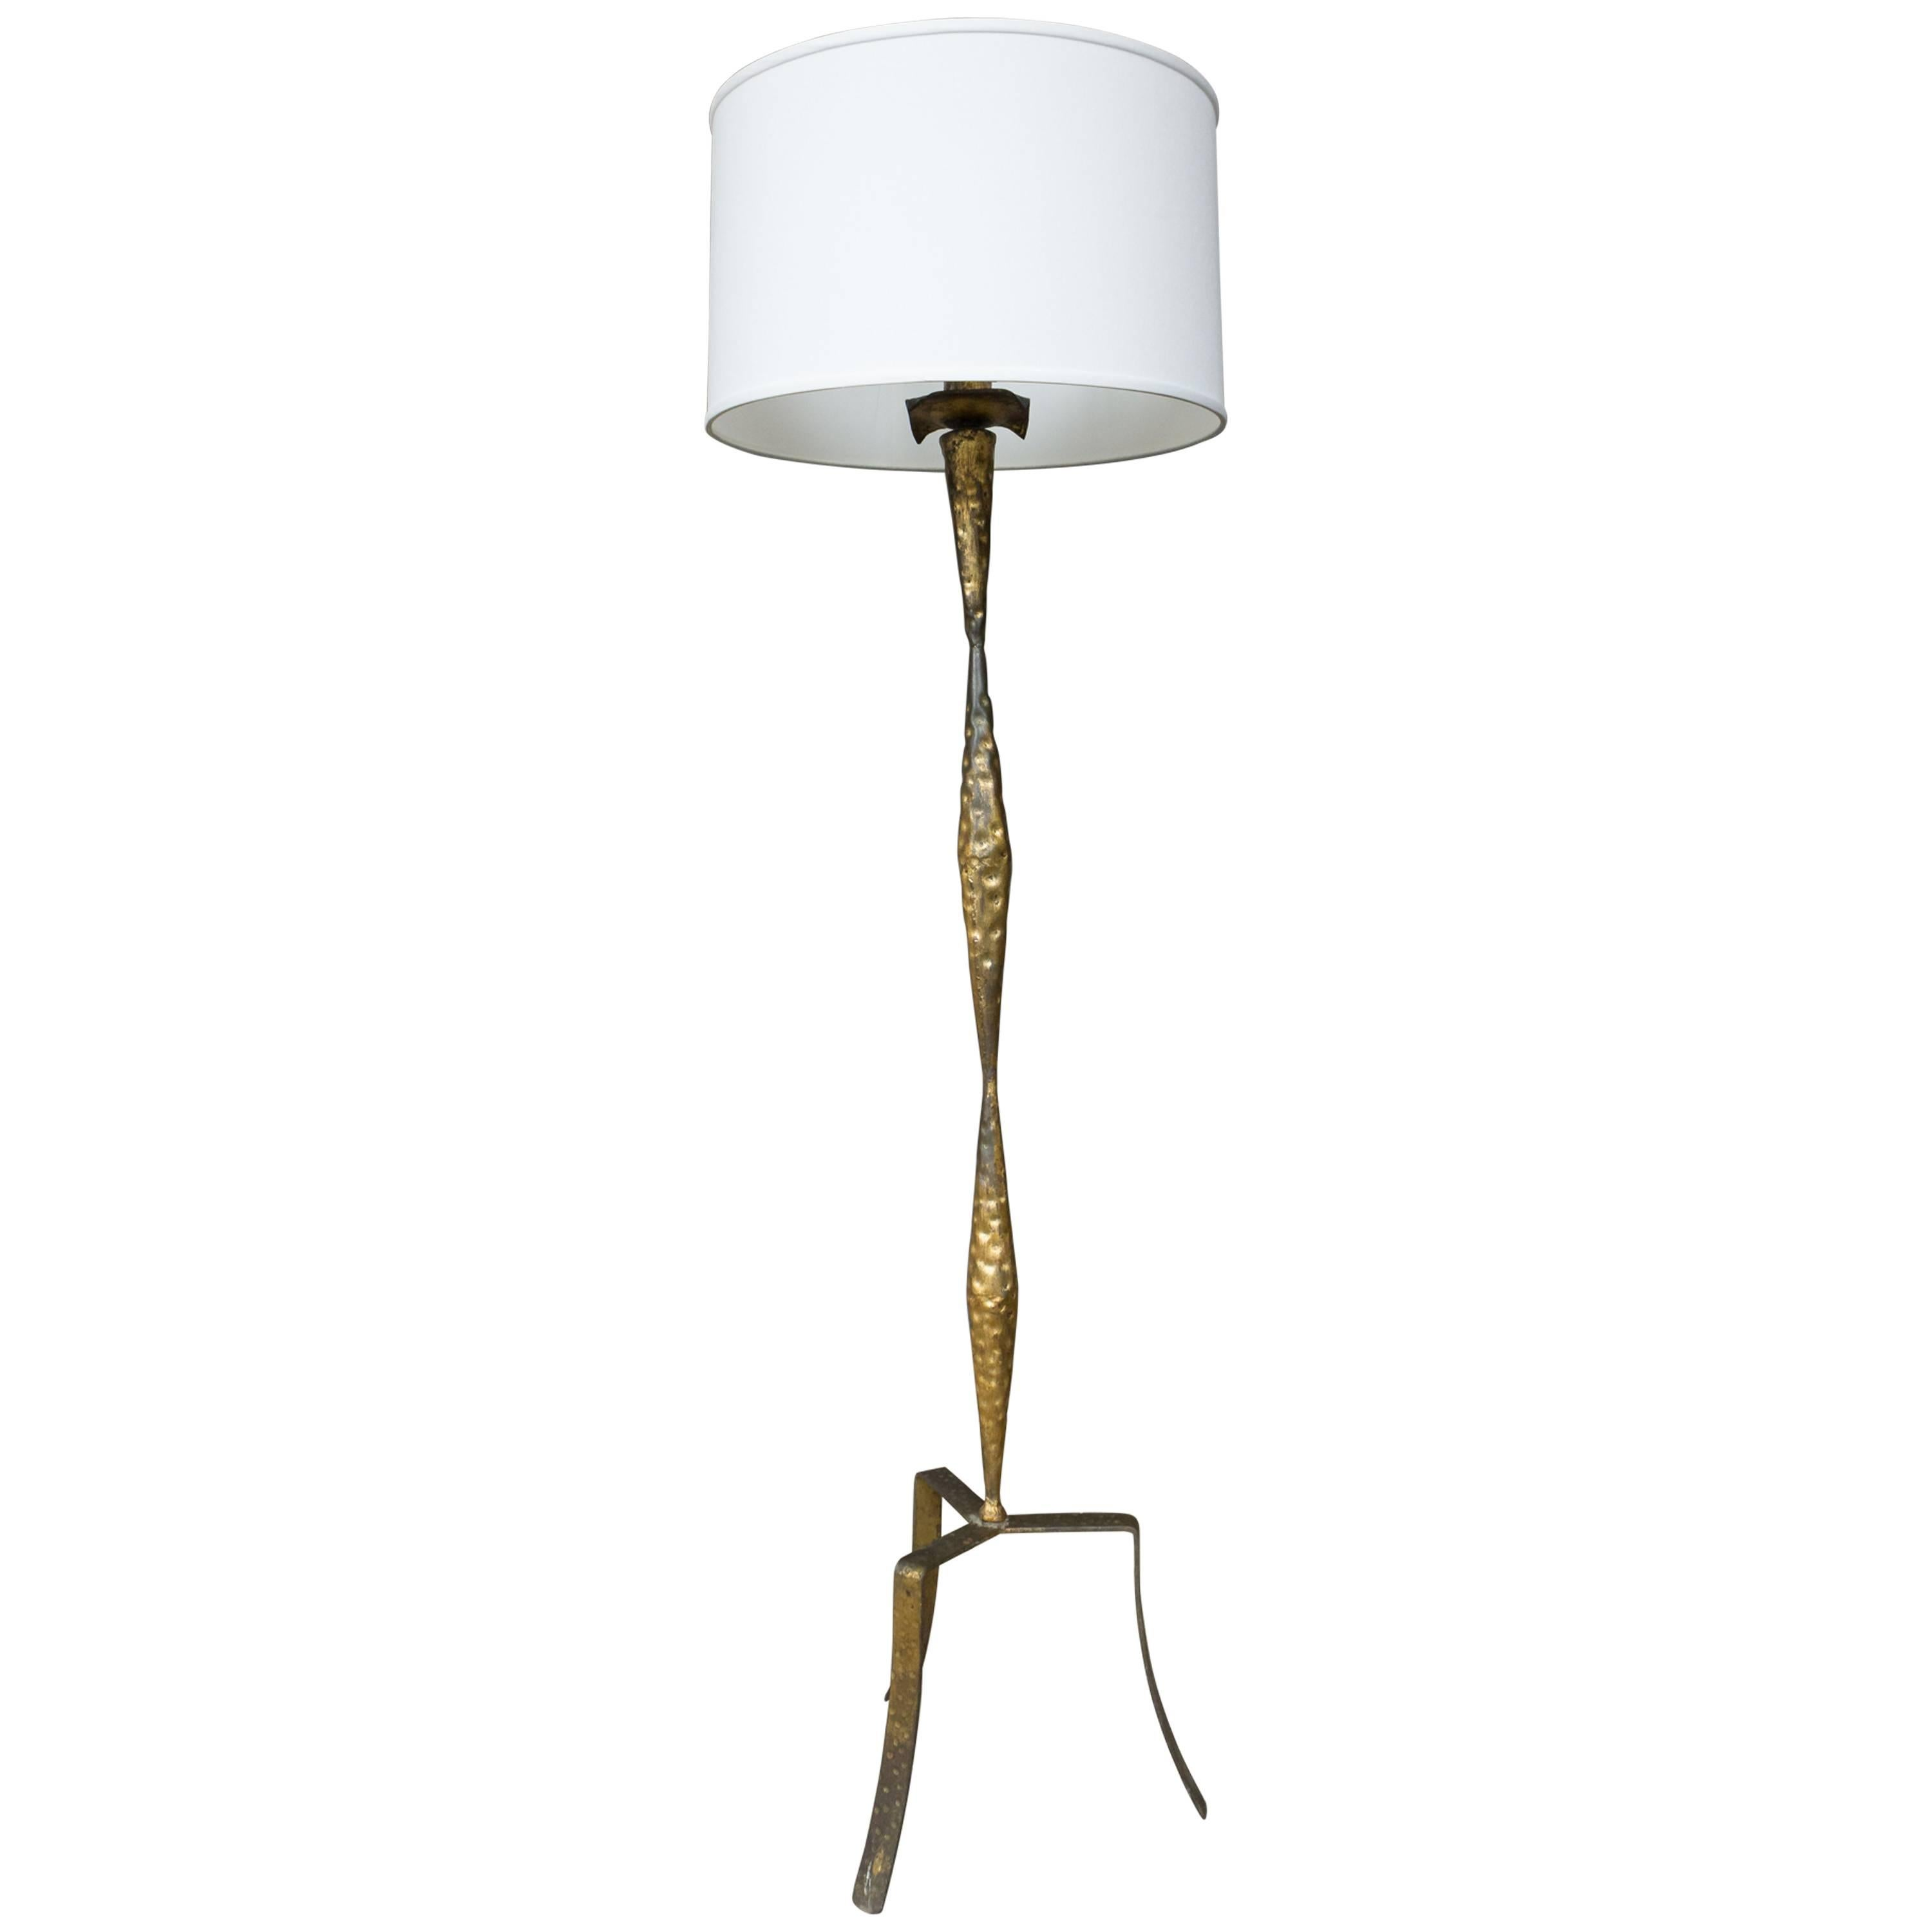 Spanish Gilt Iron Floor Lamp with Tripod Base